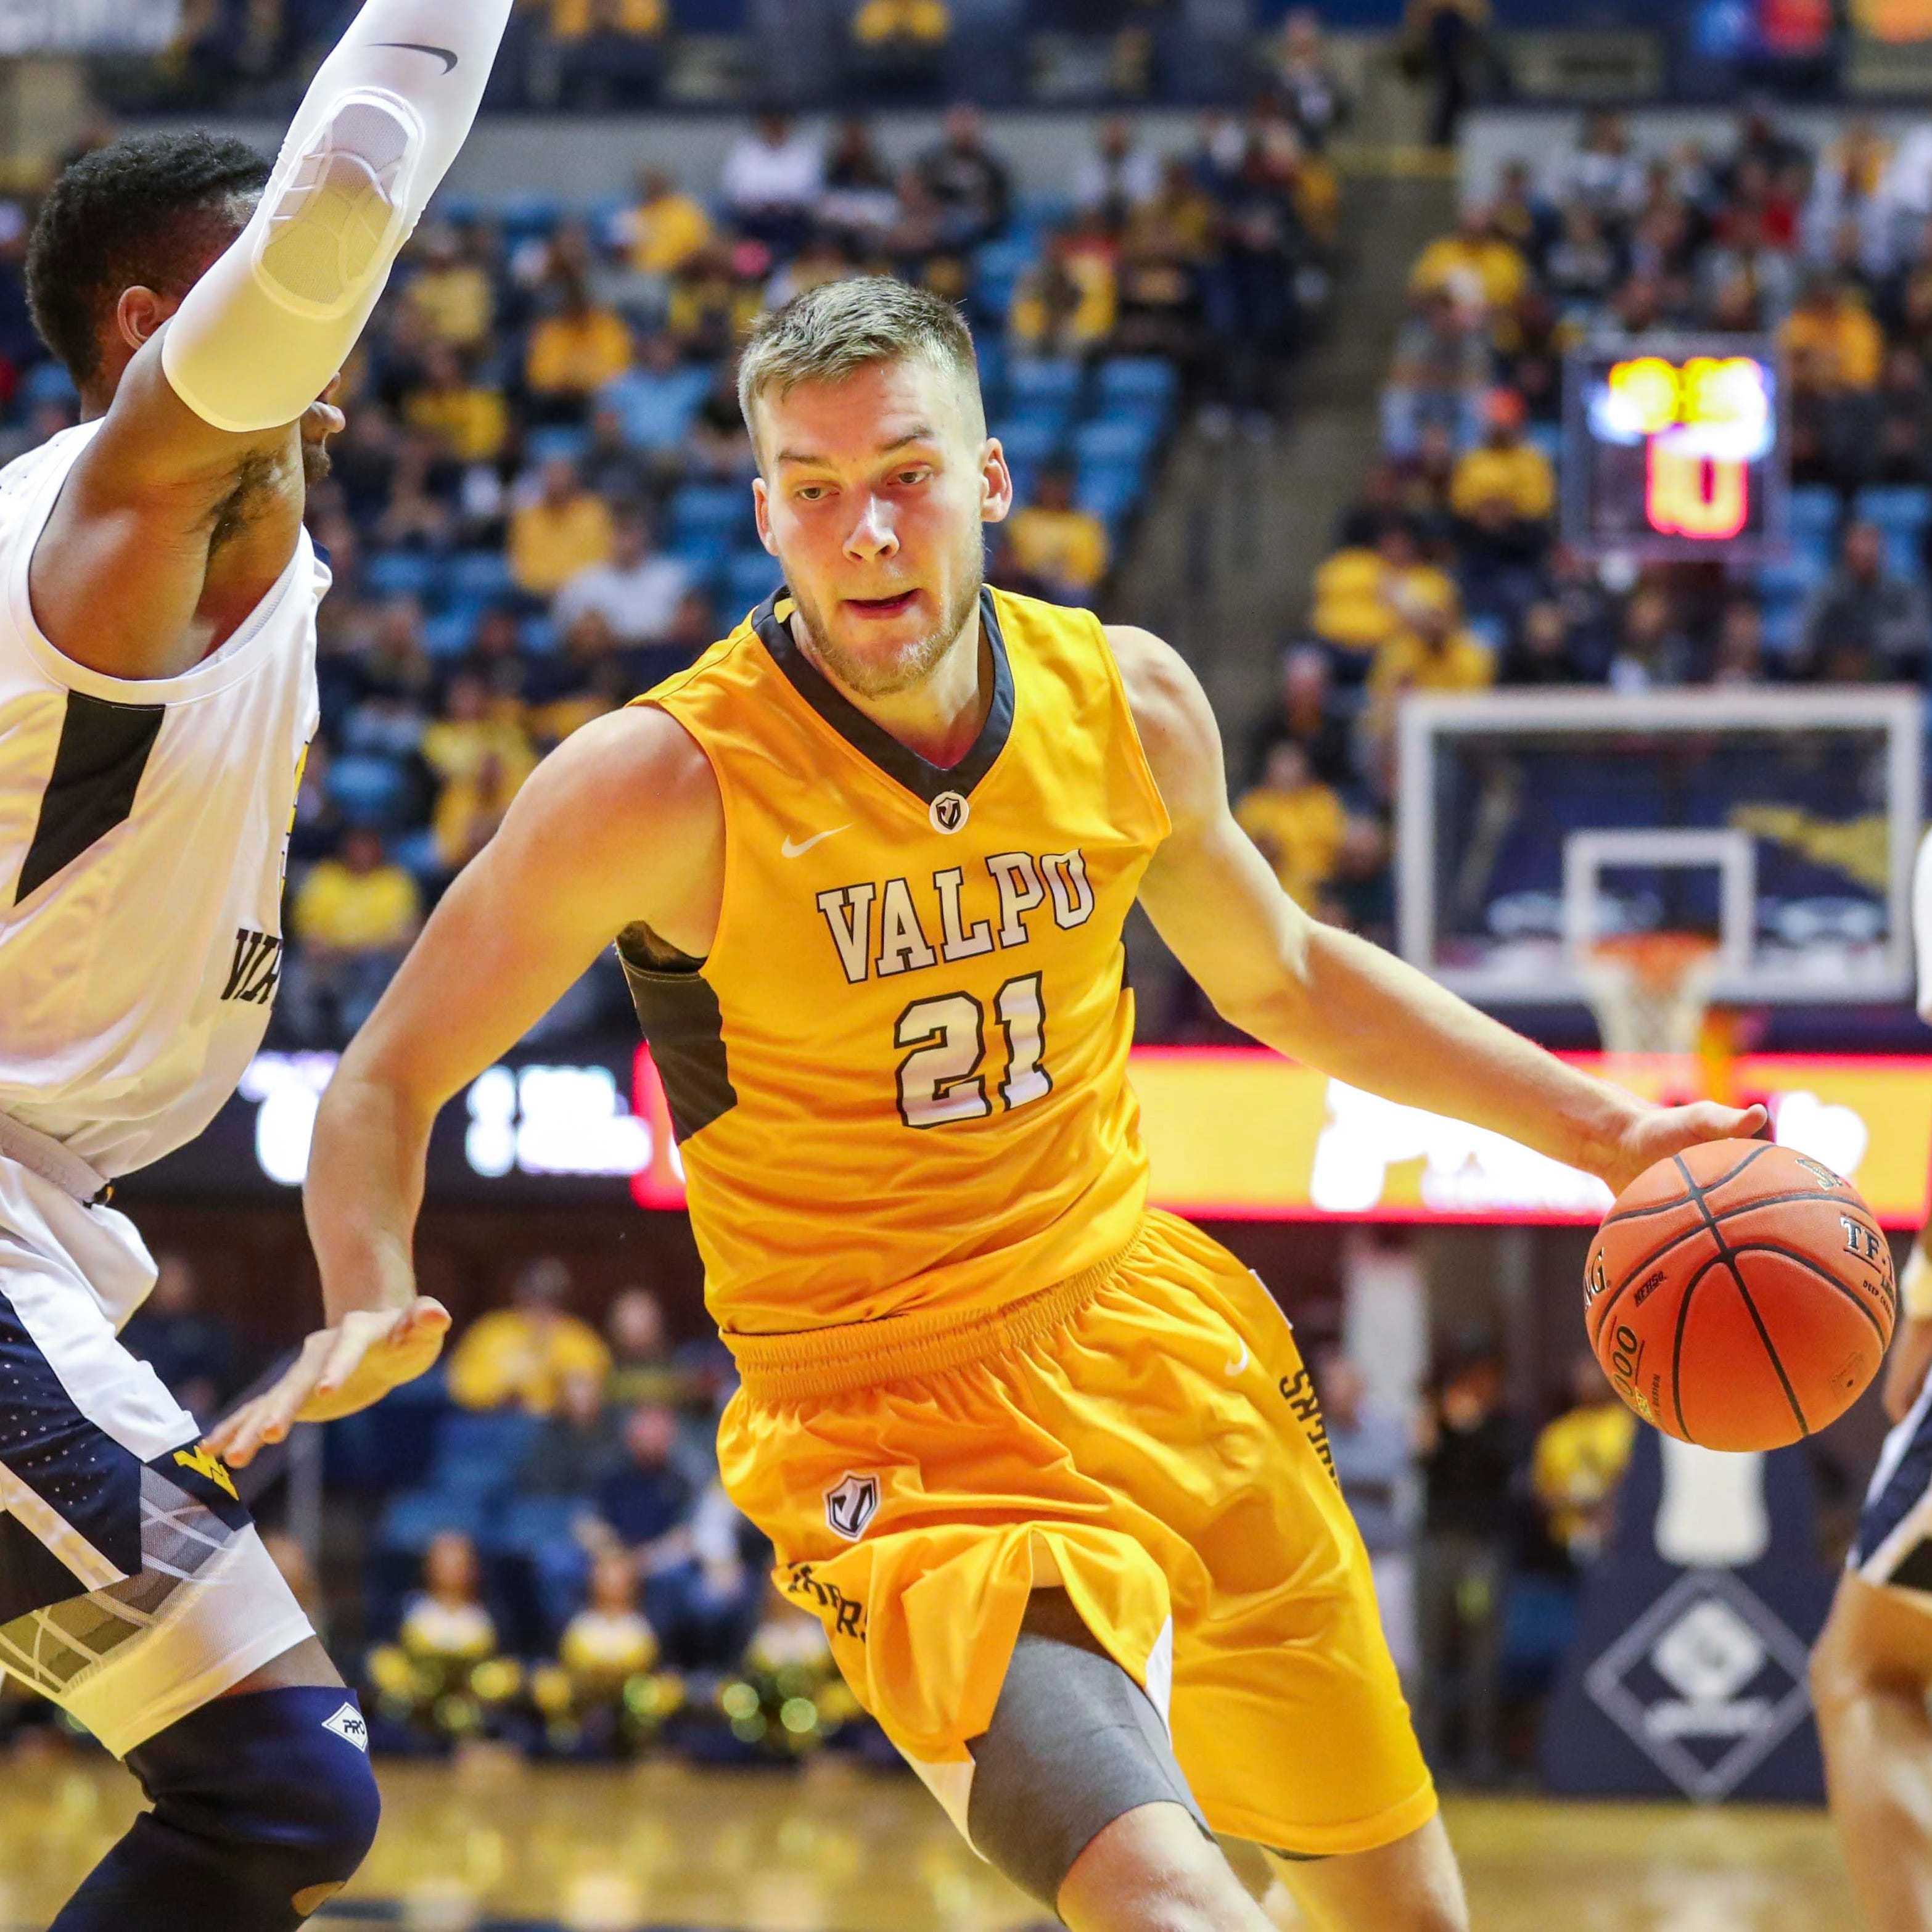 Valpo center Derrik Smits, son of Pacers legend Rik Smits, declares for the NBA Draft